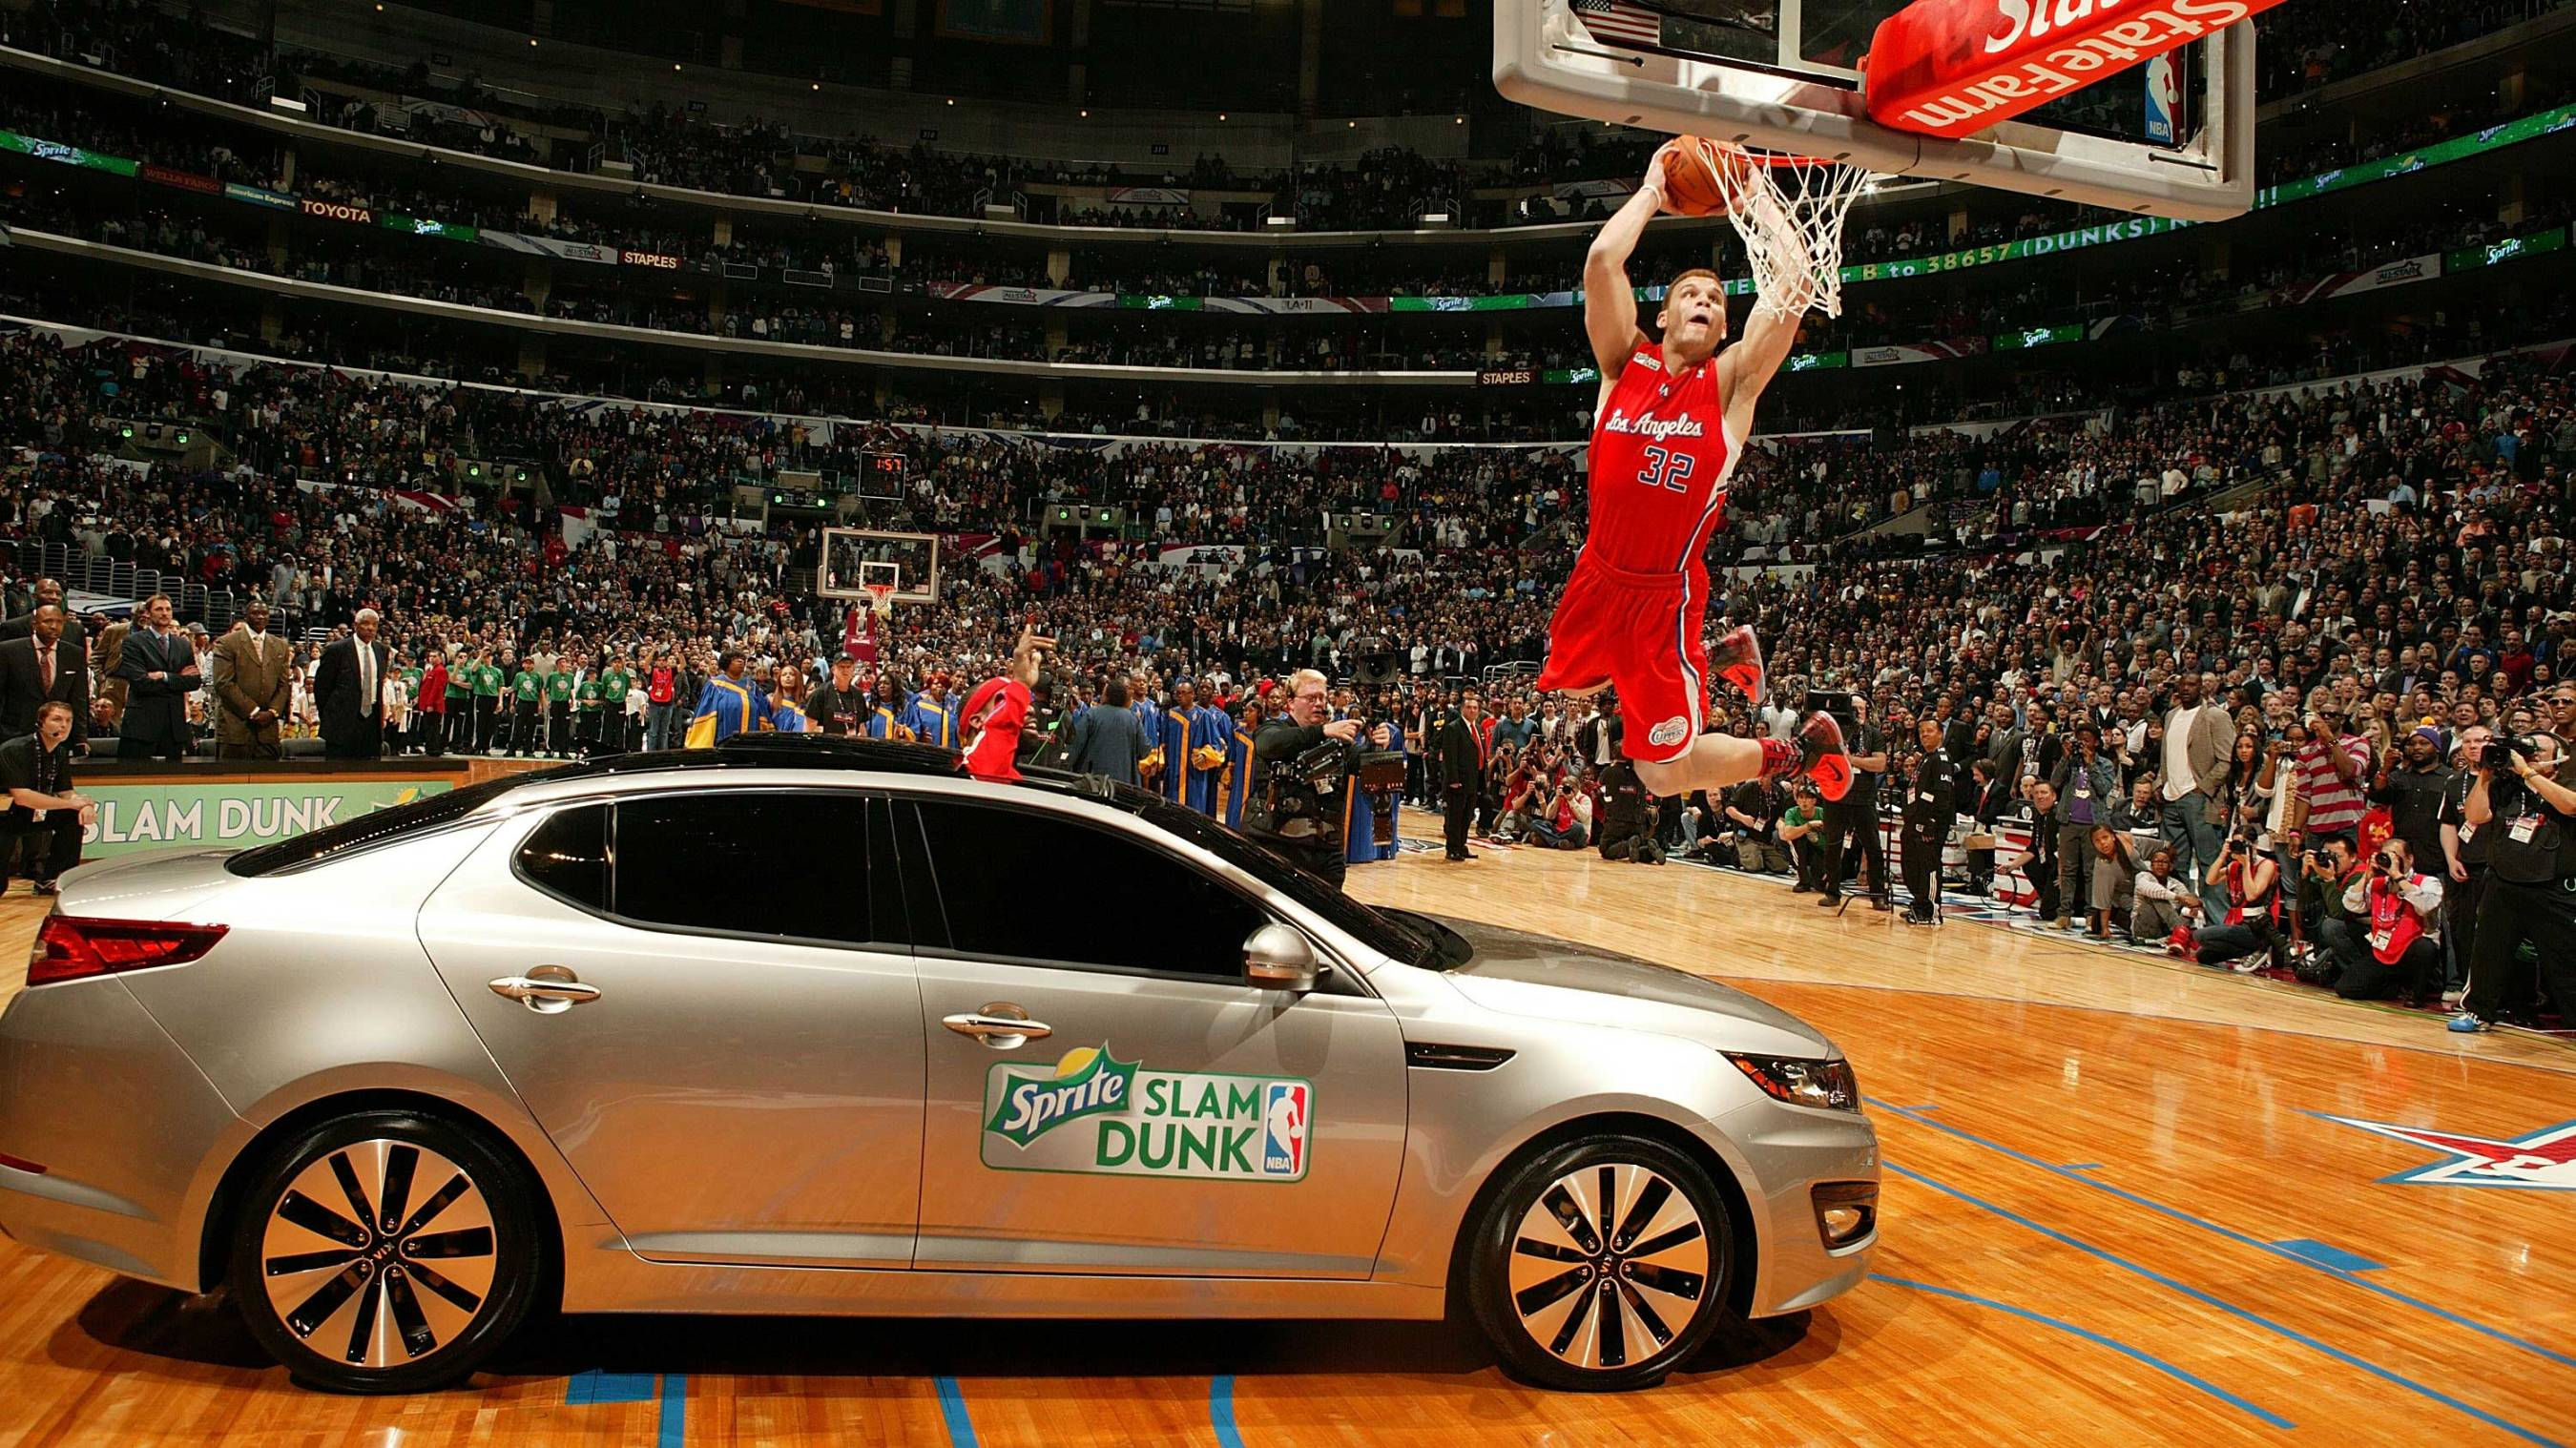 hot sale online 4fd81 b0d26 Blake Griffin jumps over a Kia and other memories from the 2011 Slam Dunk  Contest